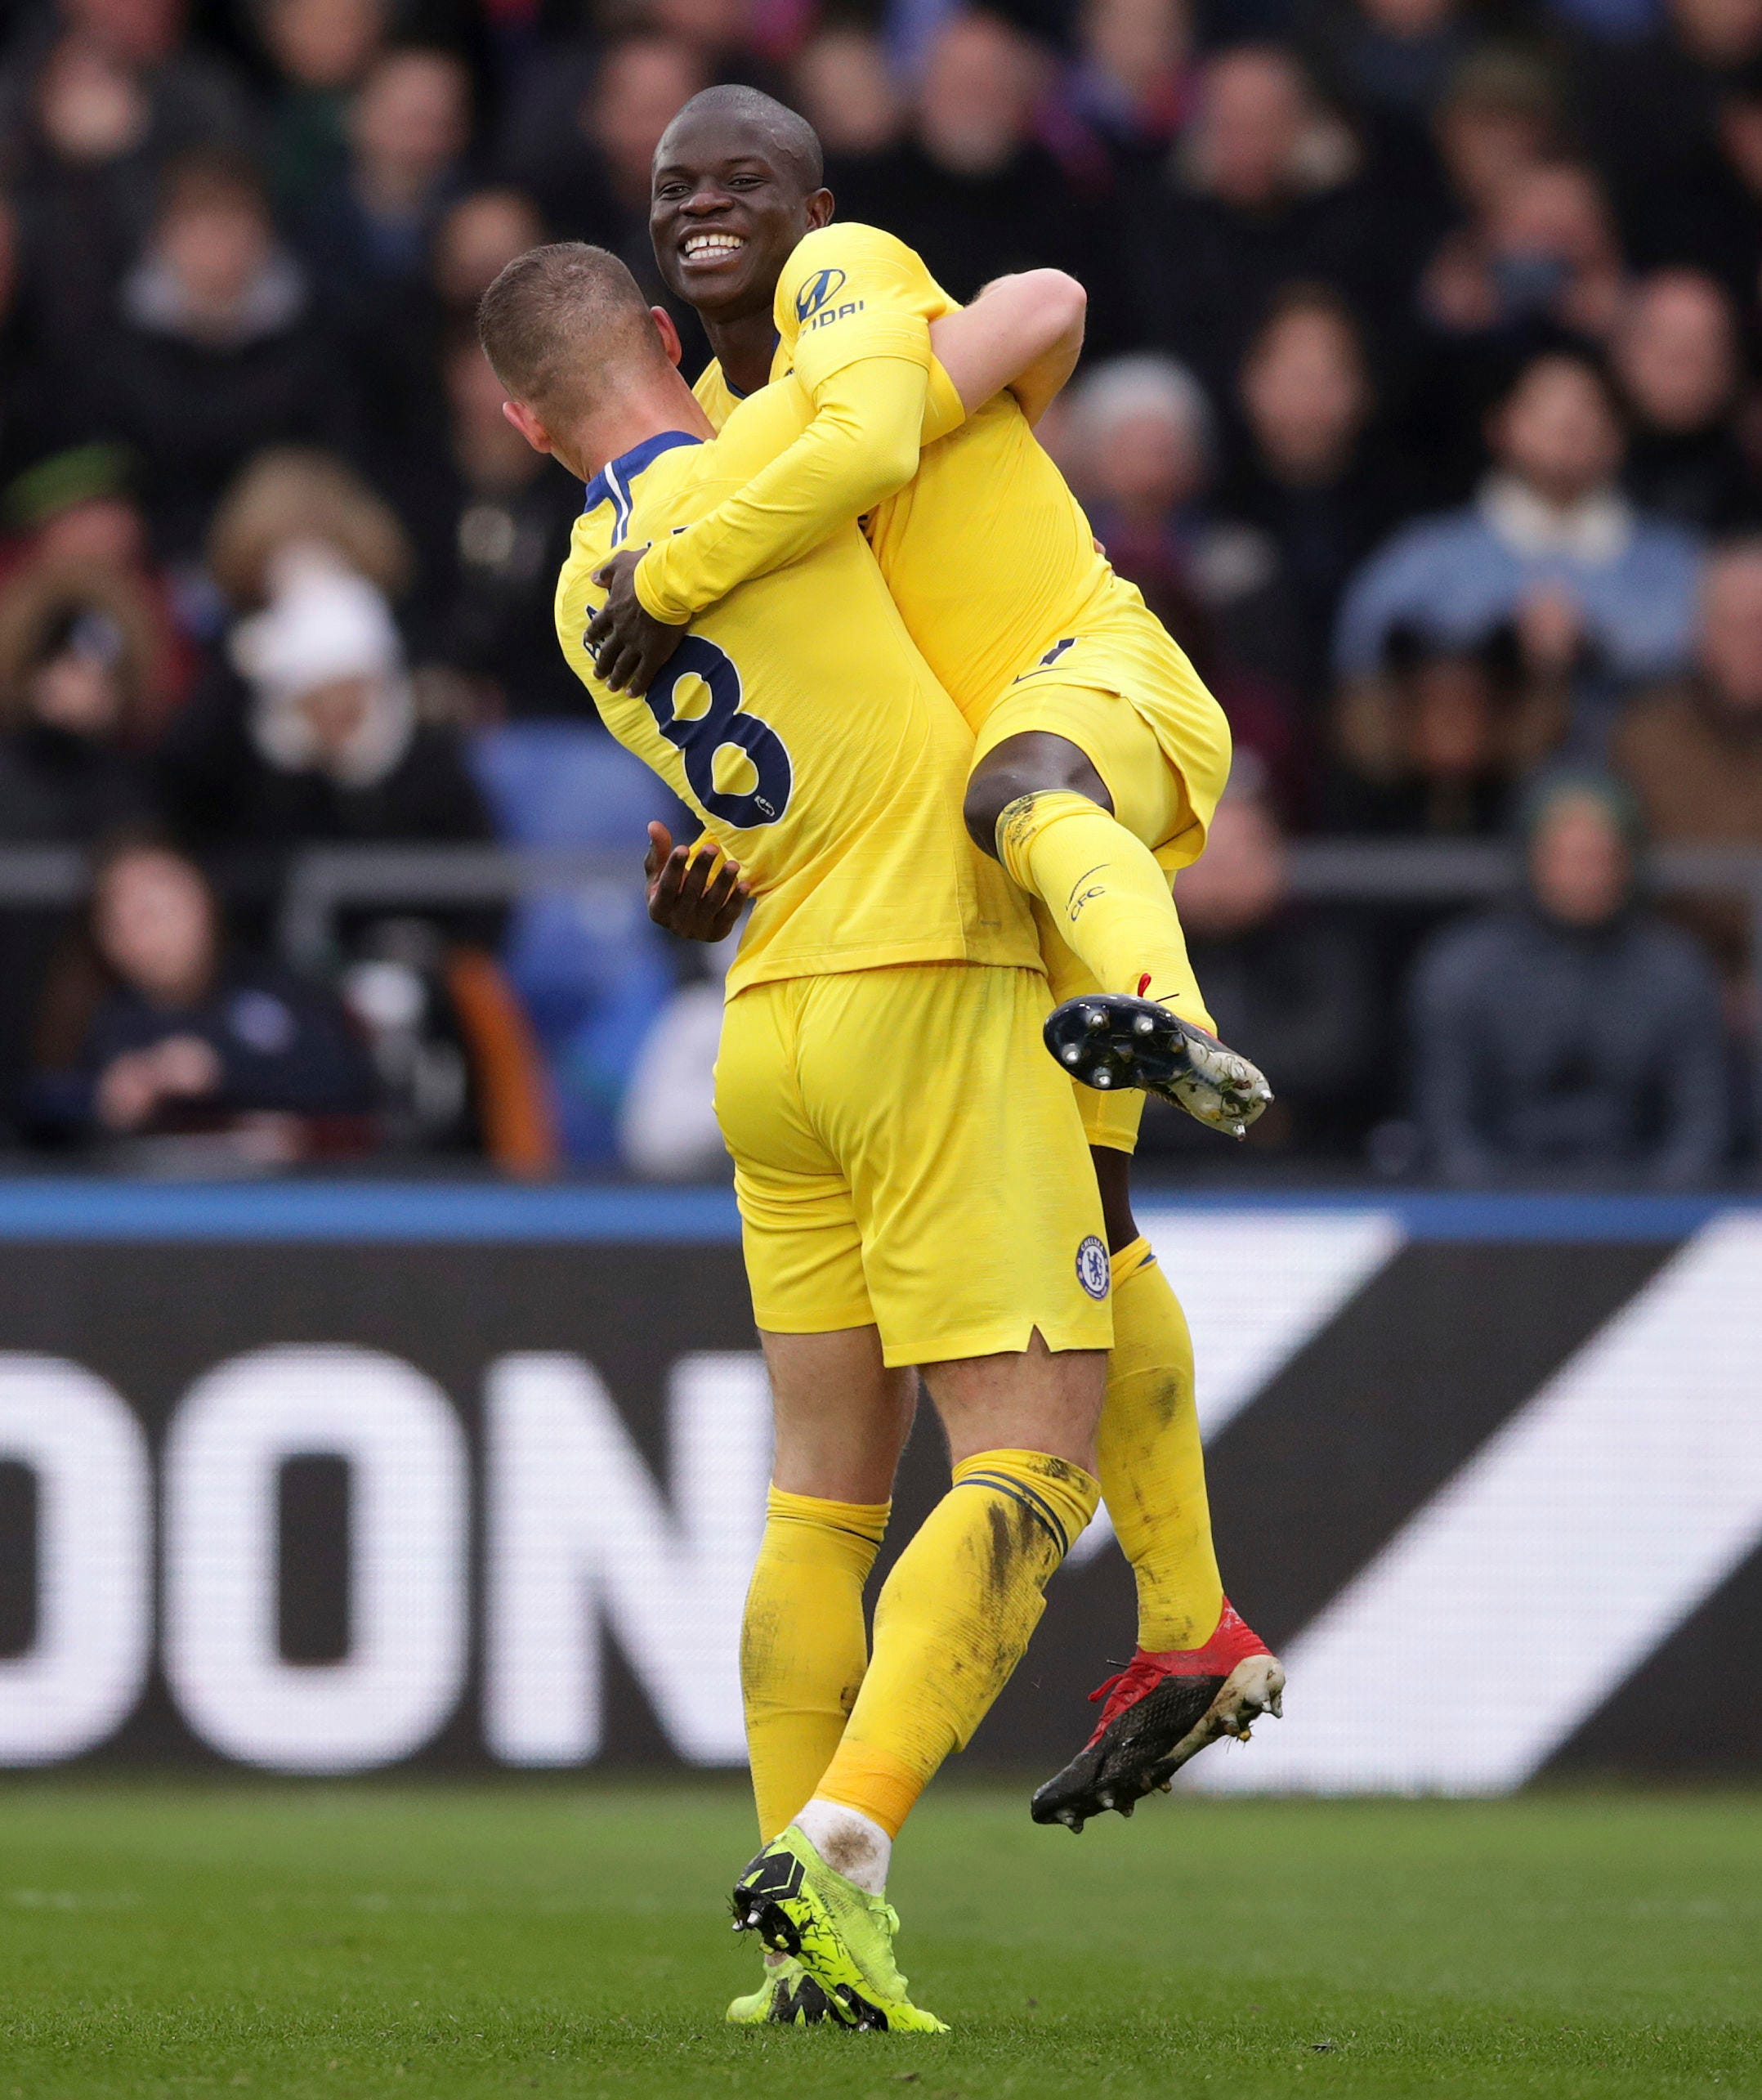 Kante gives Chelsea 1-0 win over Crystal Palace